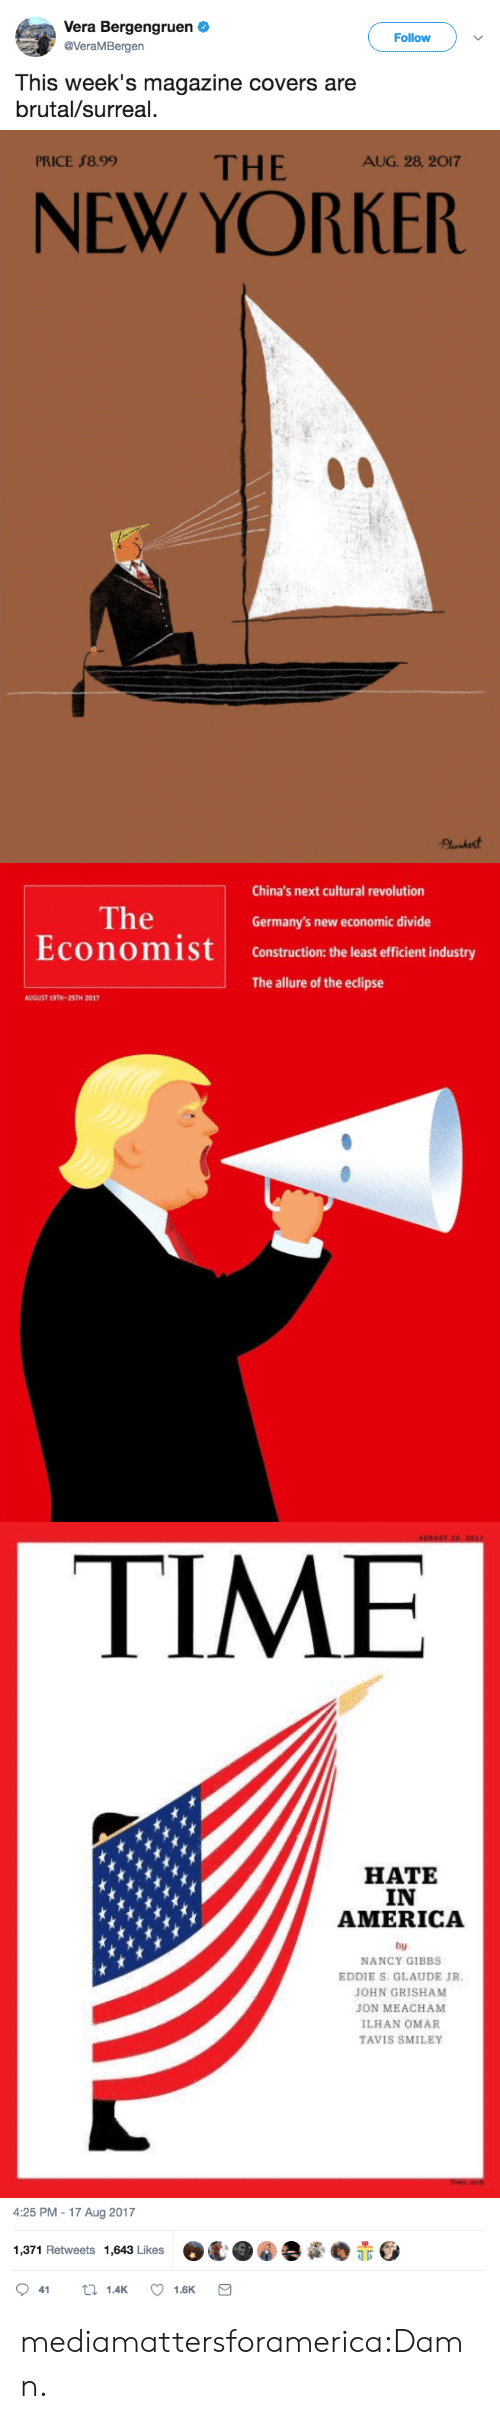 America, Tumblr, and Twitter: Vera Bergengruen  @VeraMBergen  Follow  This week's magazine covers are  brutal/surreal.   PRICE $8.99  THE AG 2.20  NEW YORKER   China's next cultural revolution  The  EconomiSt  Germany's new economic divide  Construction: the least efficient industry  The allure of the eclipse  AUGUST 19TH-25TH 2017   TIME  HATE  IN  AMERICA  by  NANCY GIBBS  EDDIE S. GLAUDE JR  JOHN GRISHAM  JON MEACHAM  ILHAN OMAR  TAVIS SMILEY   4:25 PM-17 Aug 2017  1,371 Retweets 1,643 Likes  O鼋.@.夤.赤 mediamattersforamerica:Damn.